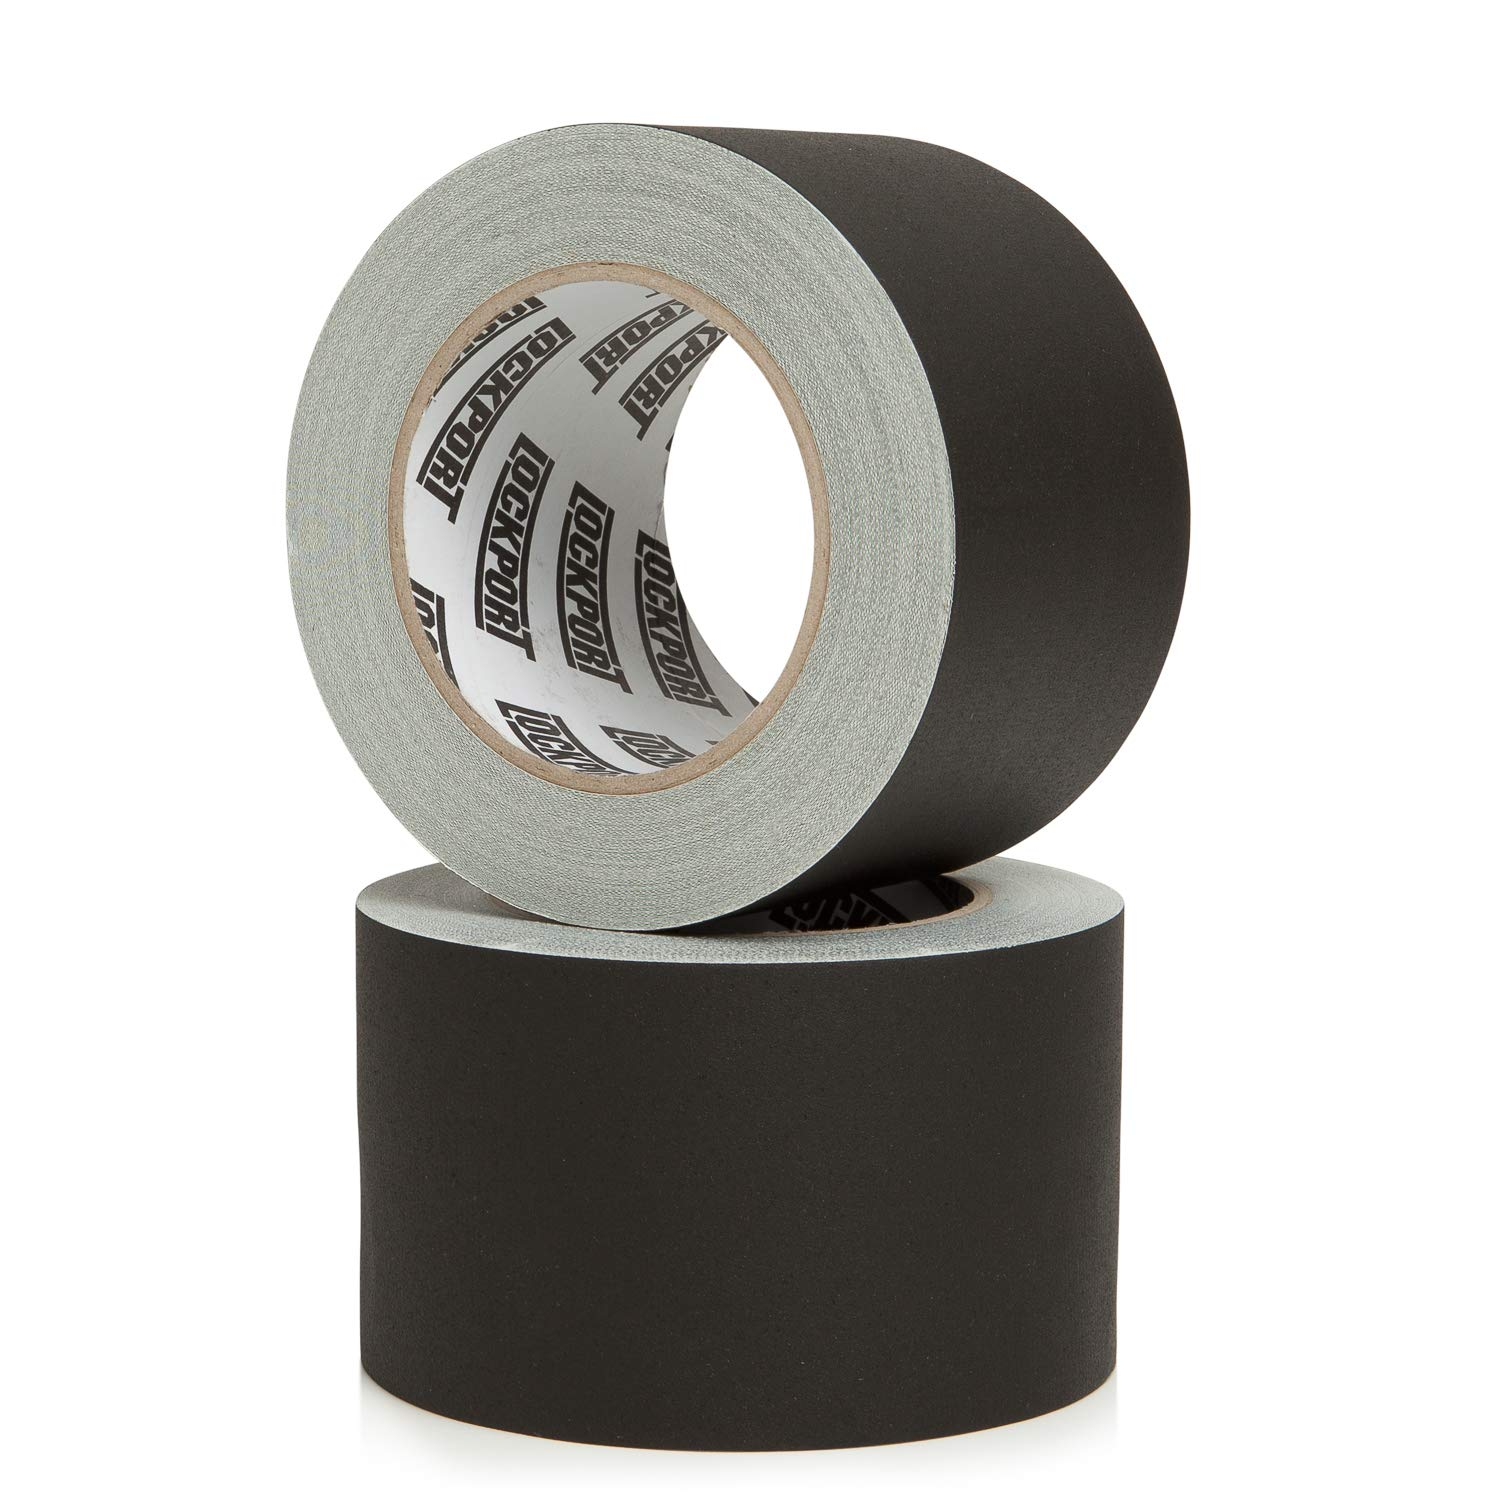 New: 3 Inch Black Gaffers Tape 30 Yards and 3 inches Wide Gaff- Bulk Set Gaffer Roll Refills Case Filming 2 Pack Multi-Pack Matte Cloth Fabric for Stage Sets,Photography Production Equipment